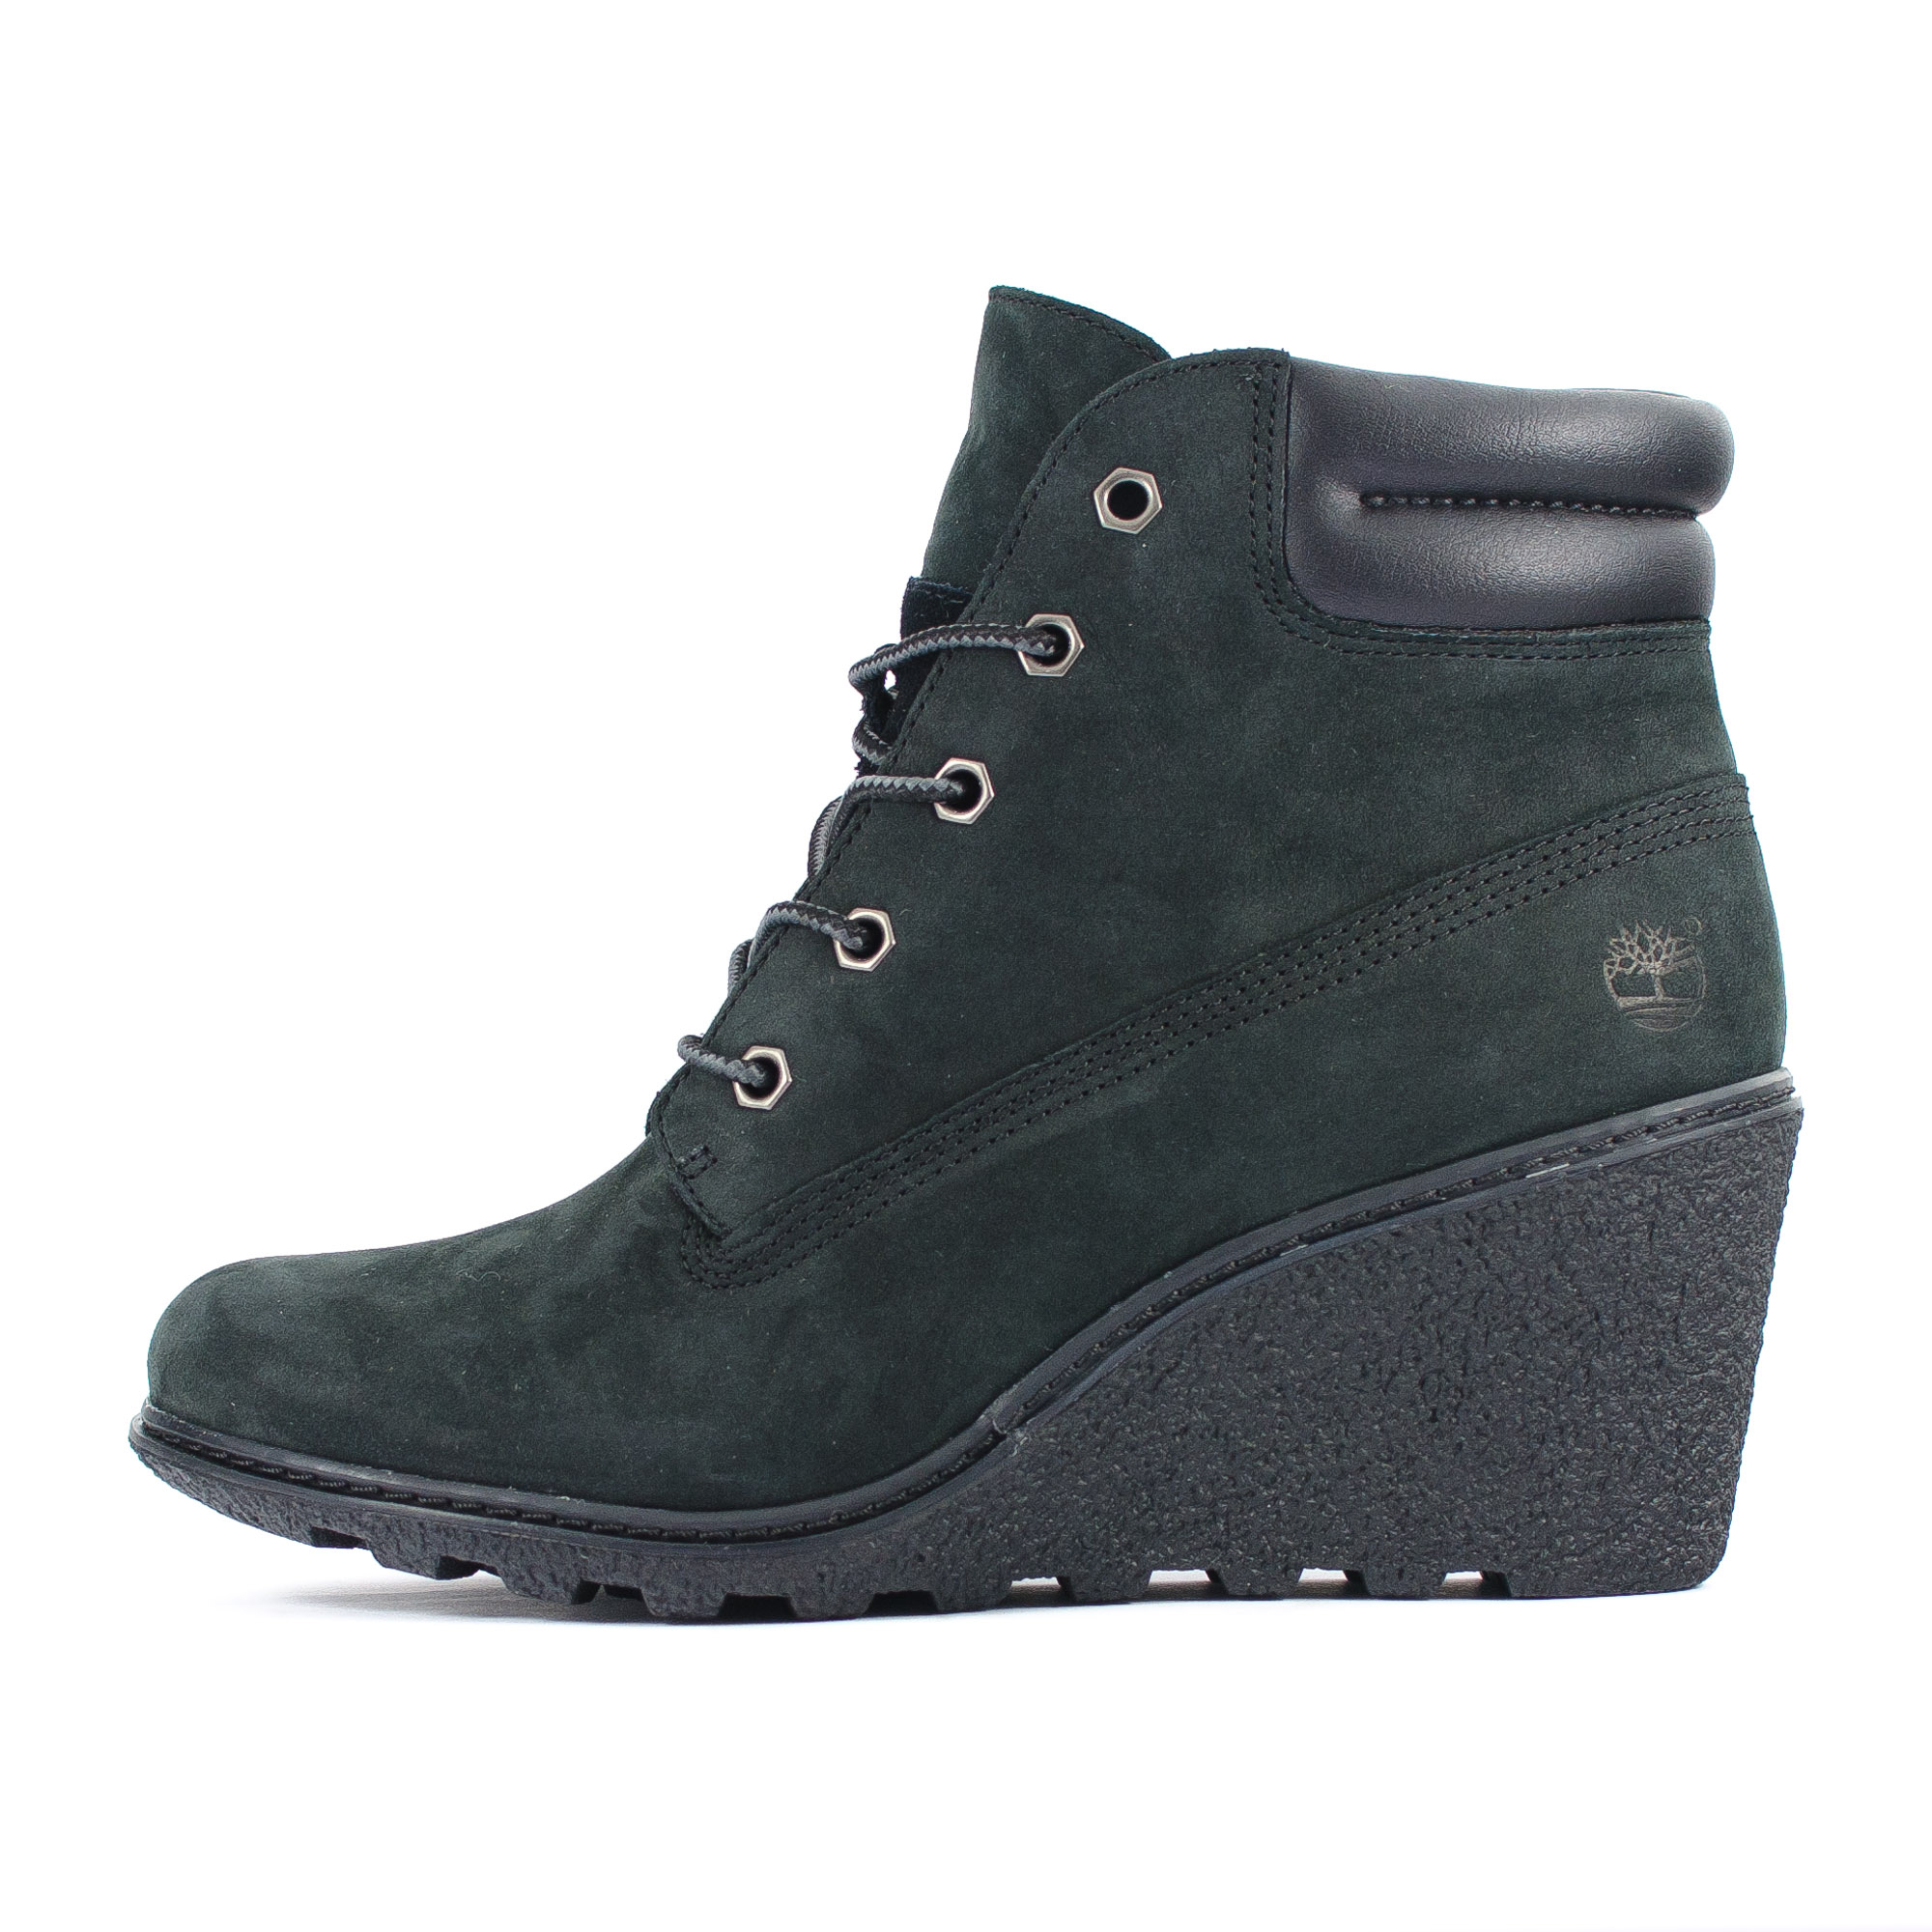 Amazing Timberland Womenu0026#39;s Nellie Boots - Black | Free UK Delivery*